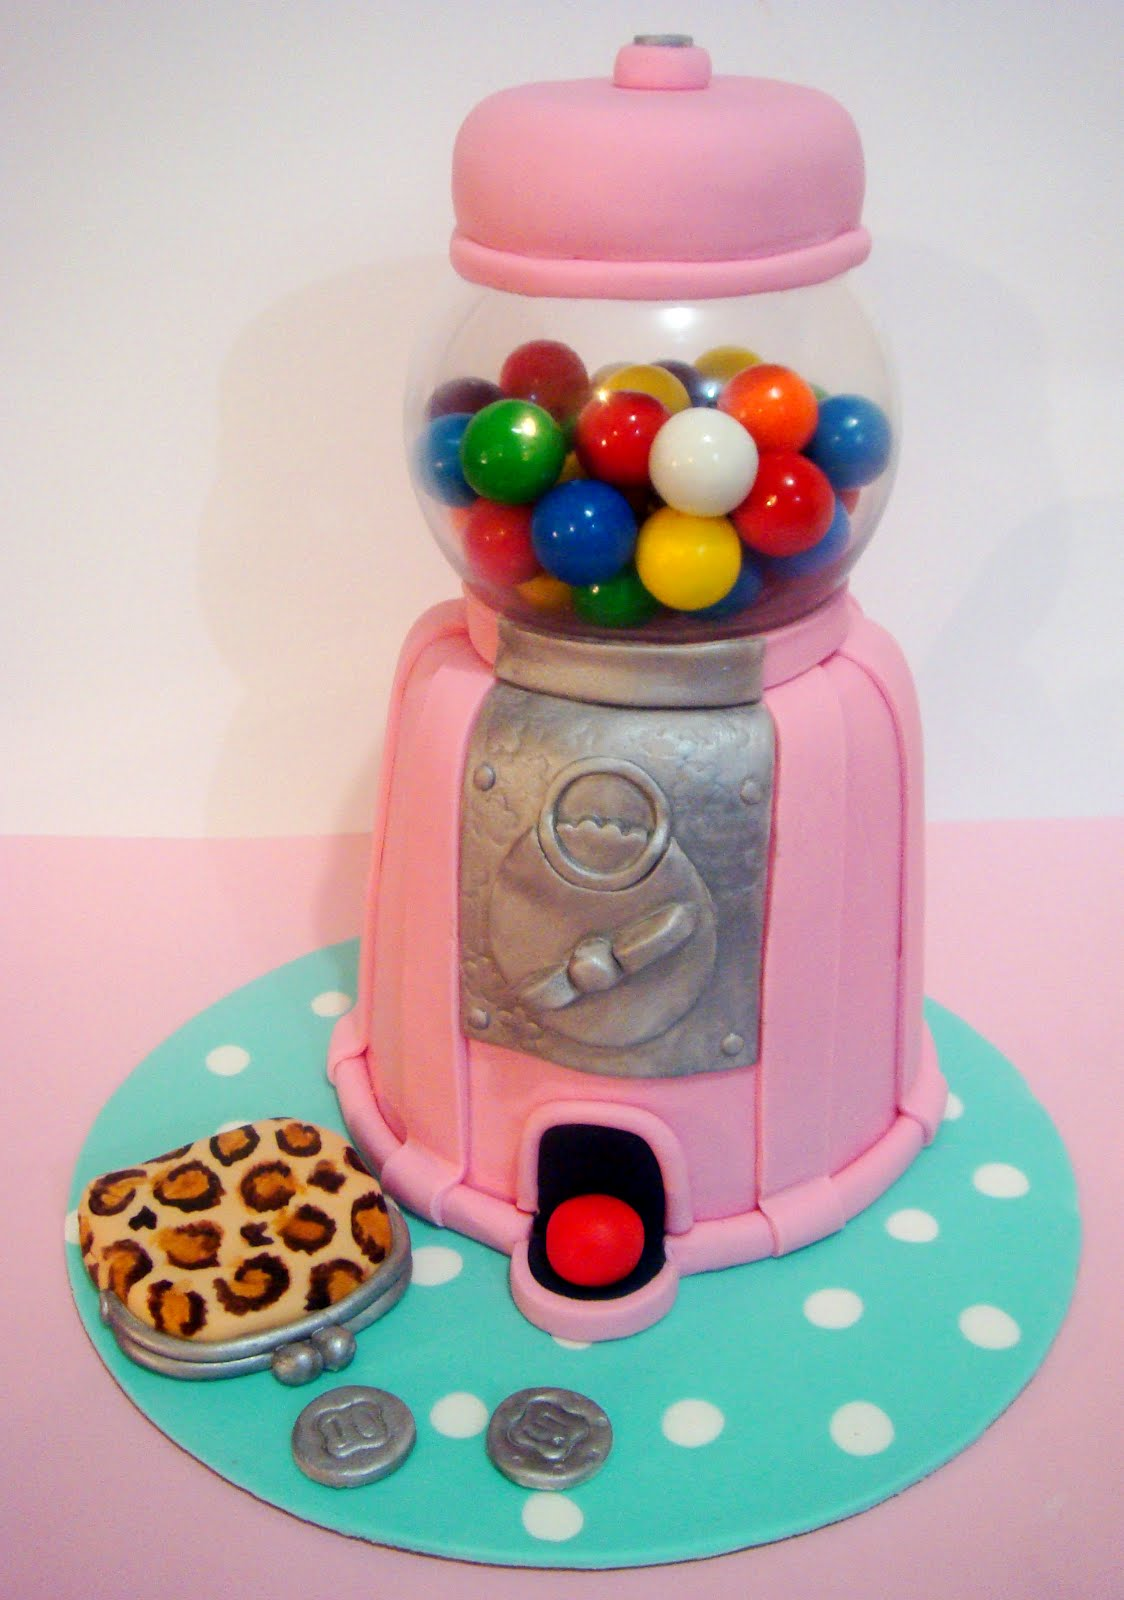 butter hearts sugar: Gumball Machine Cake